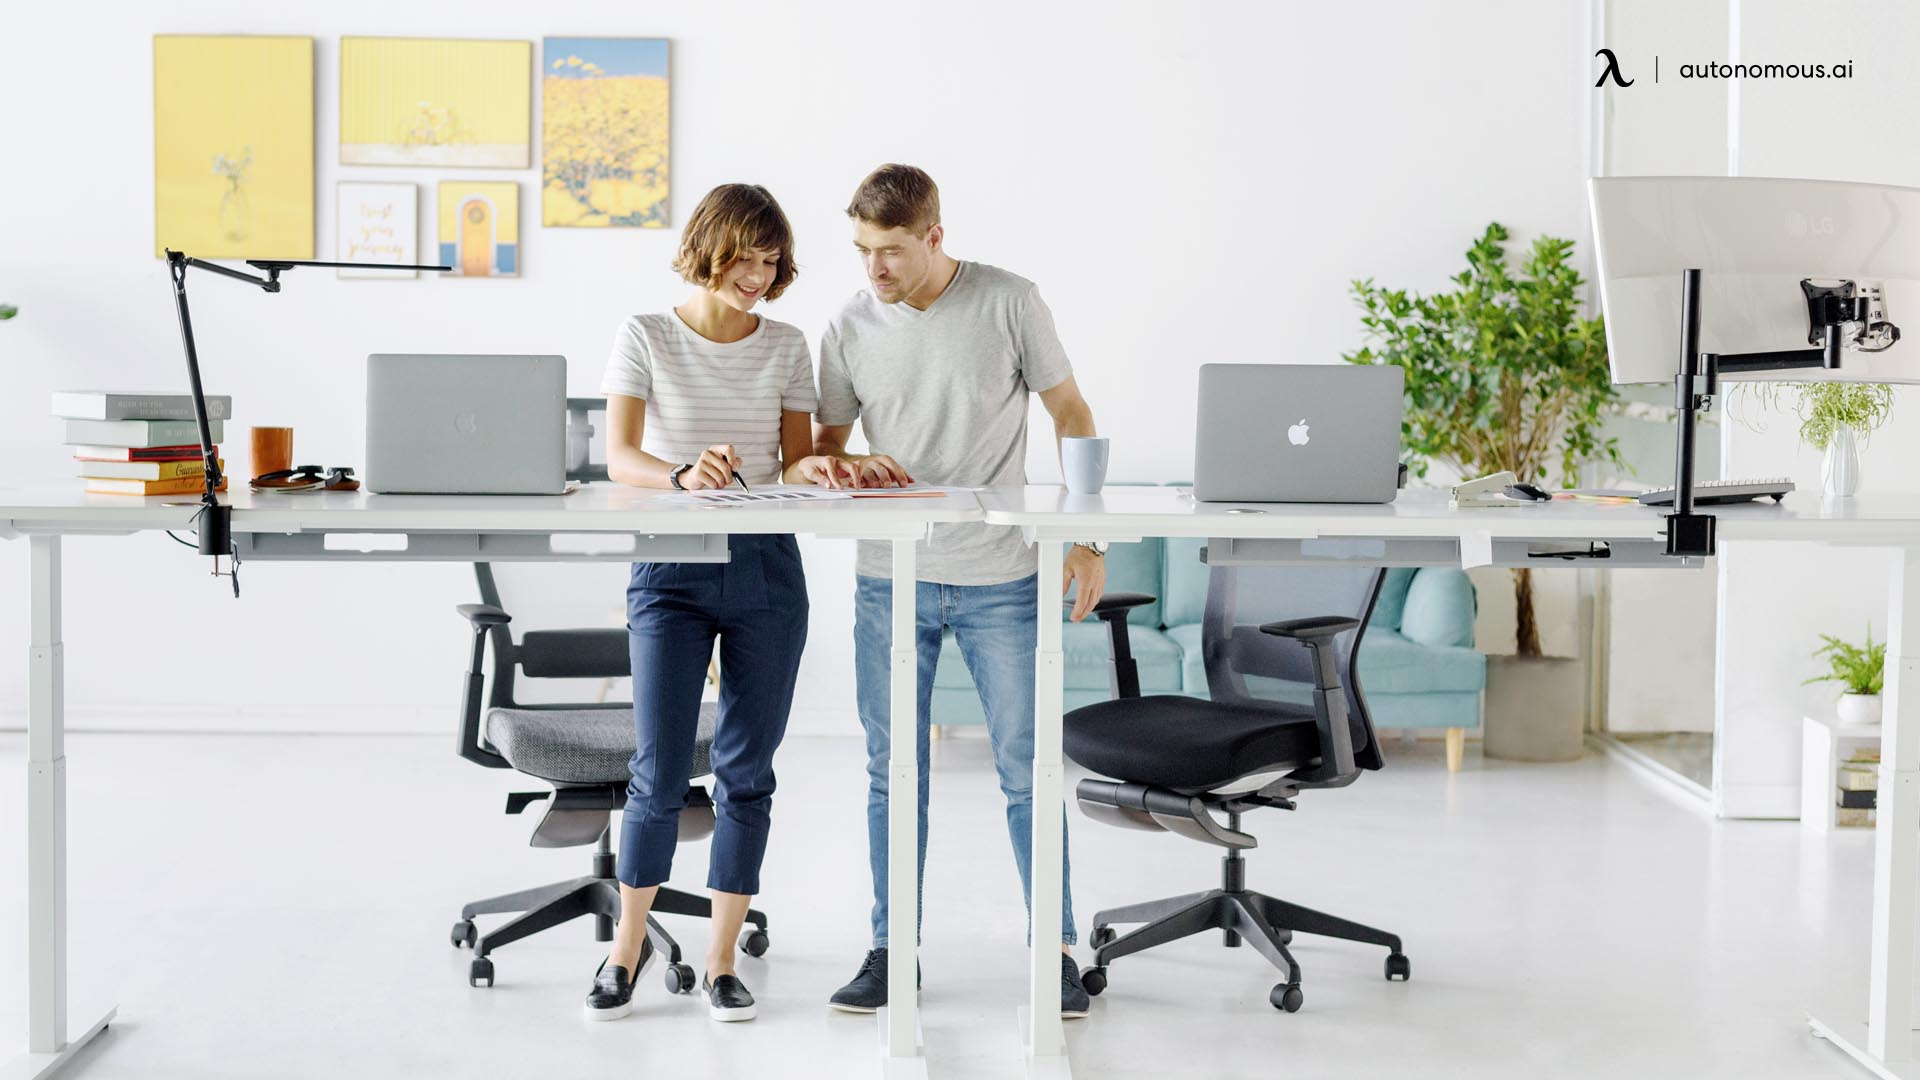 which is better for a standing desk, stool or chair?